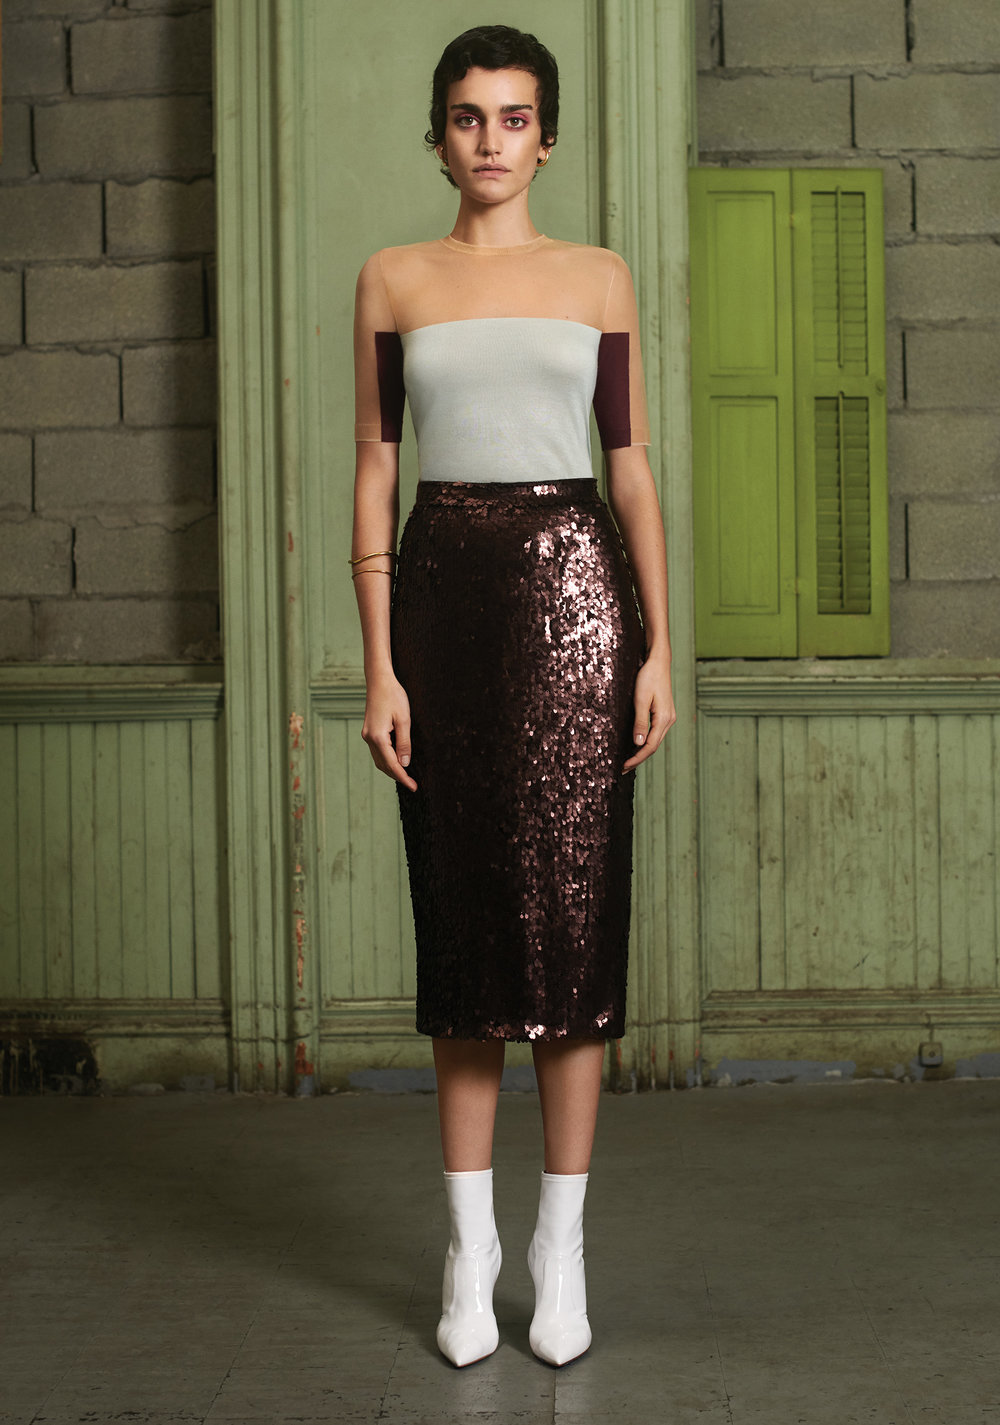 JULIANNA-BASS-SS19-12-Justine-Sweater-Belinda-Sequin-Skirt.jpg